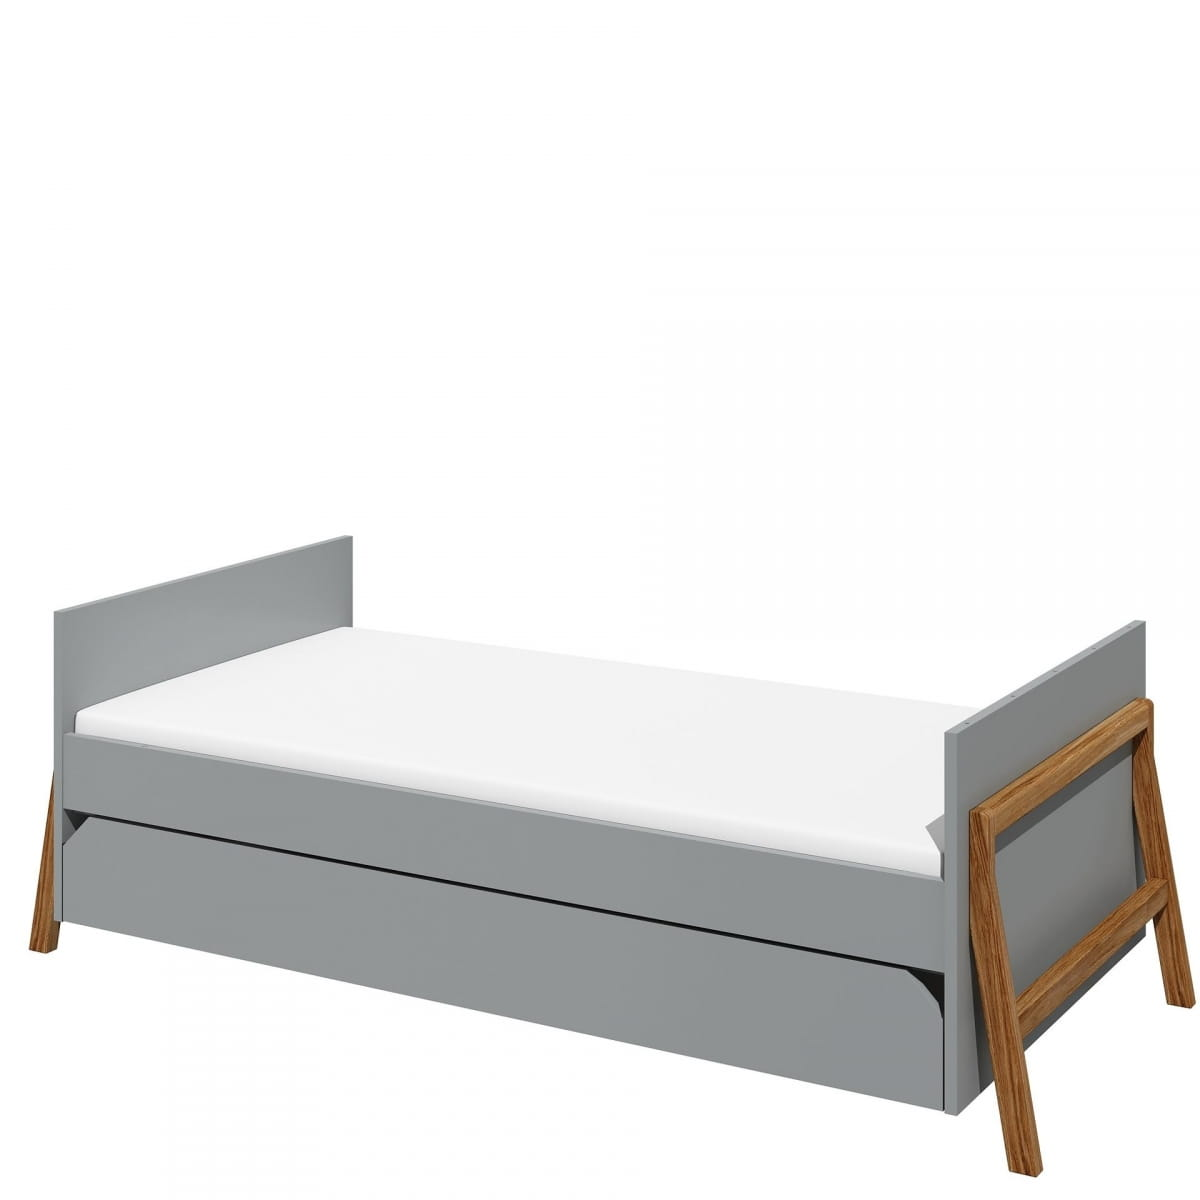 Lotta_gray_junior_bed_70x140_02.jpg